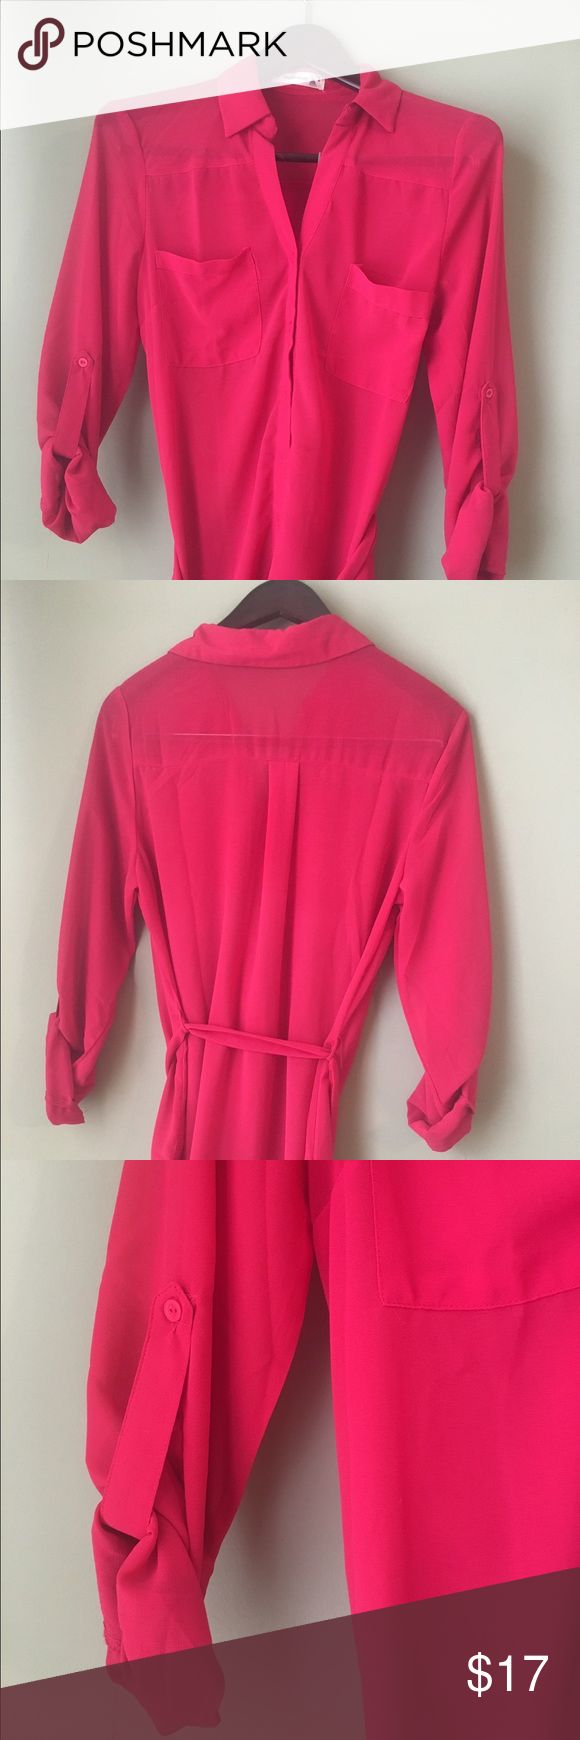 Sheer Hot Pink Long Blouse Adorable Blouse with a tie around the waist. Tops Blouses